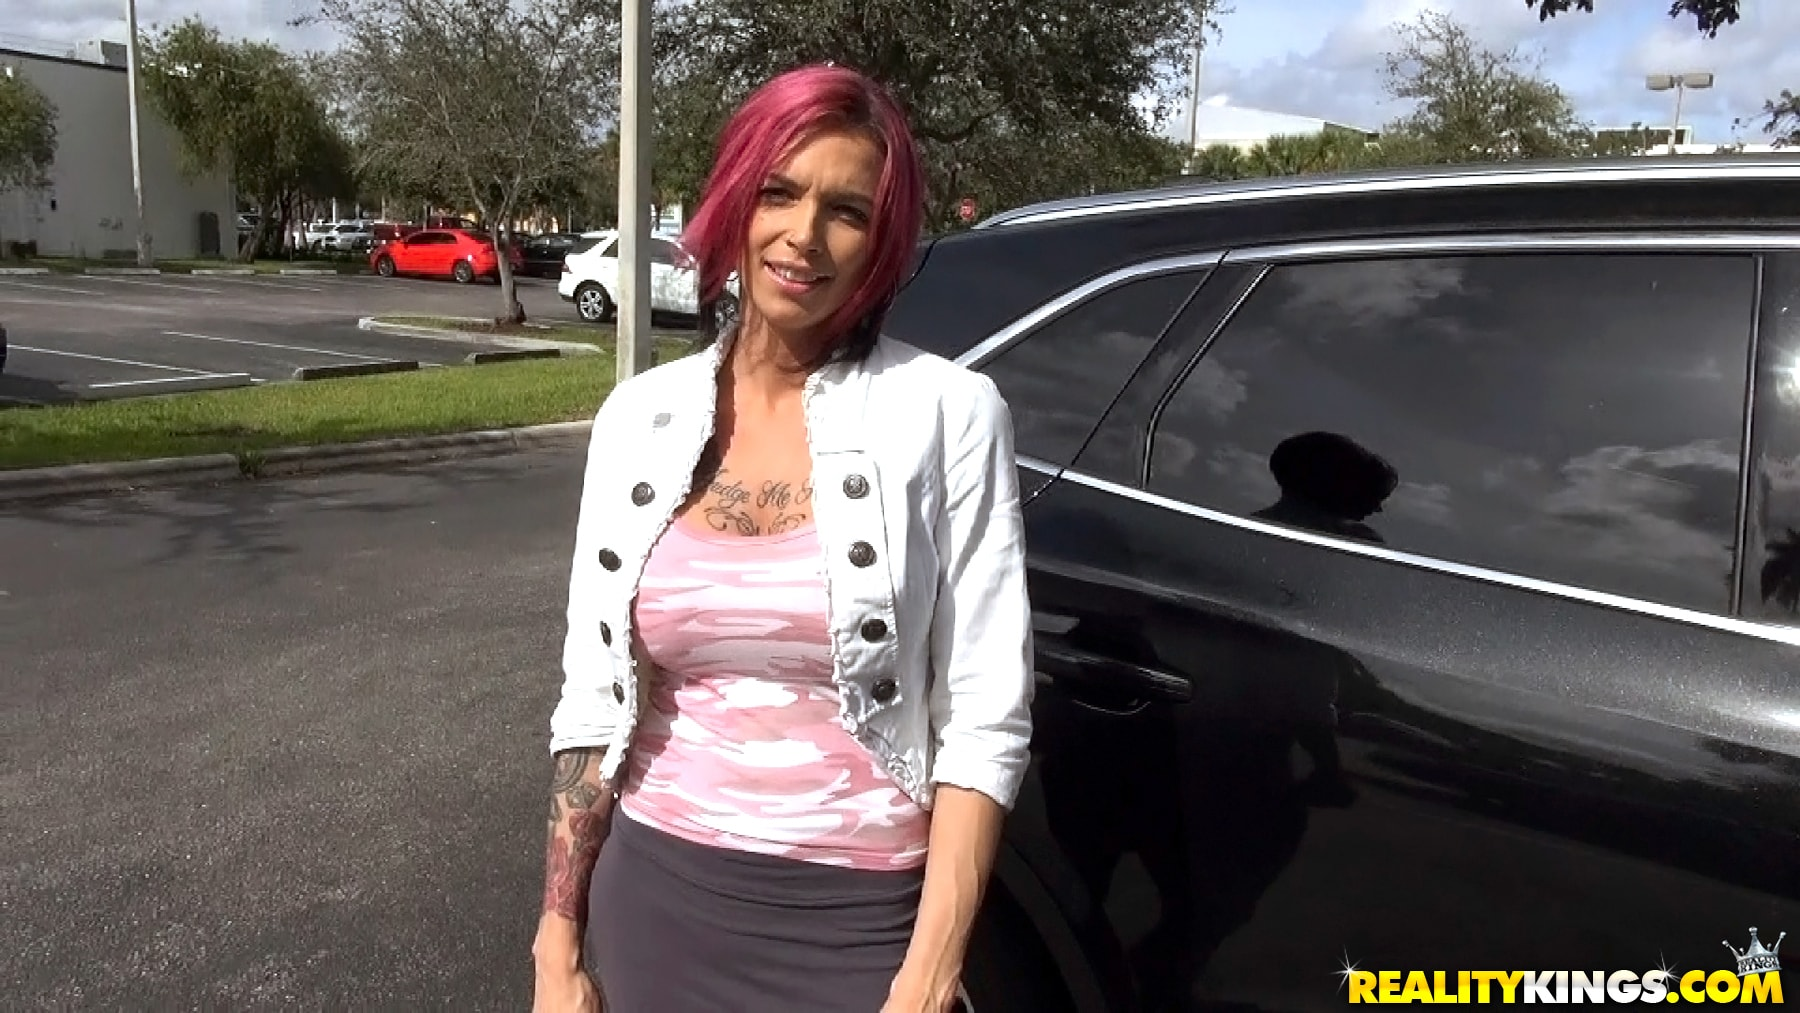 Reality Kings 'Peak performance' starring Anna Bell Peaks (photo 45)